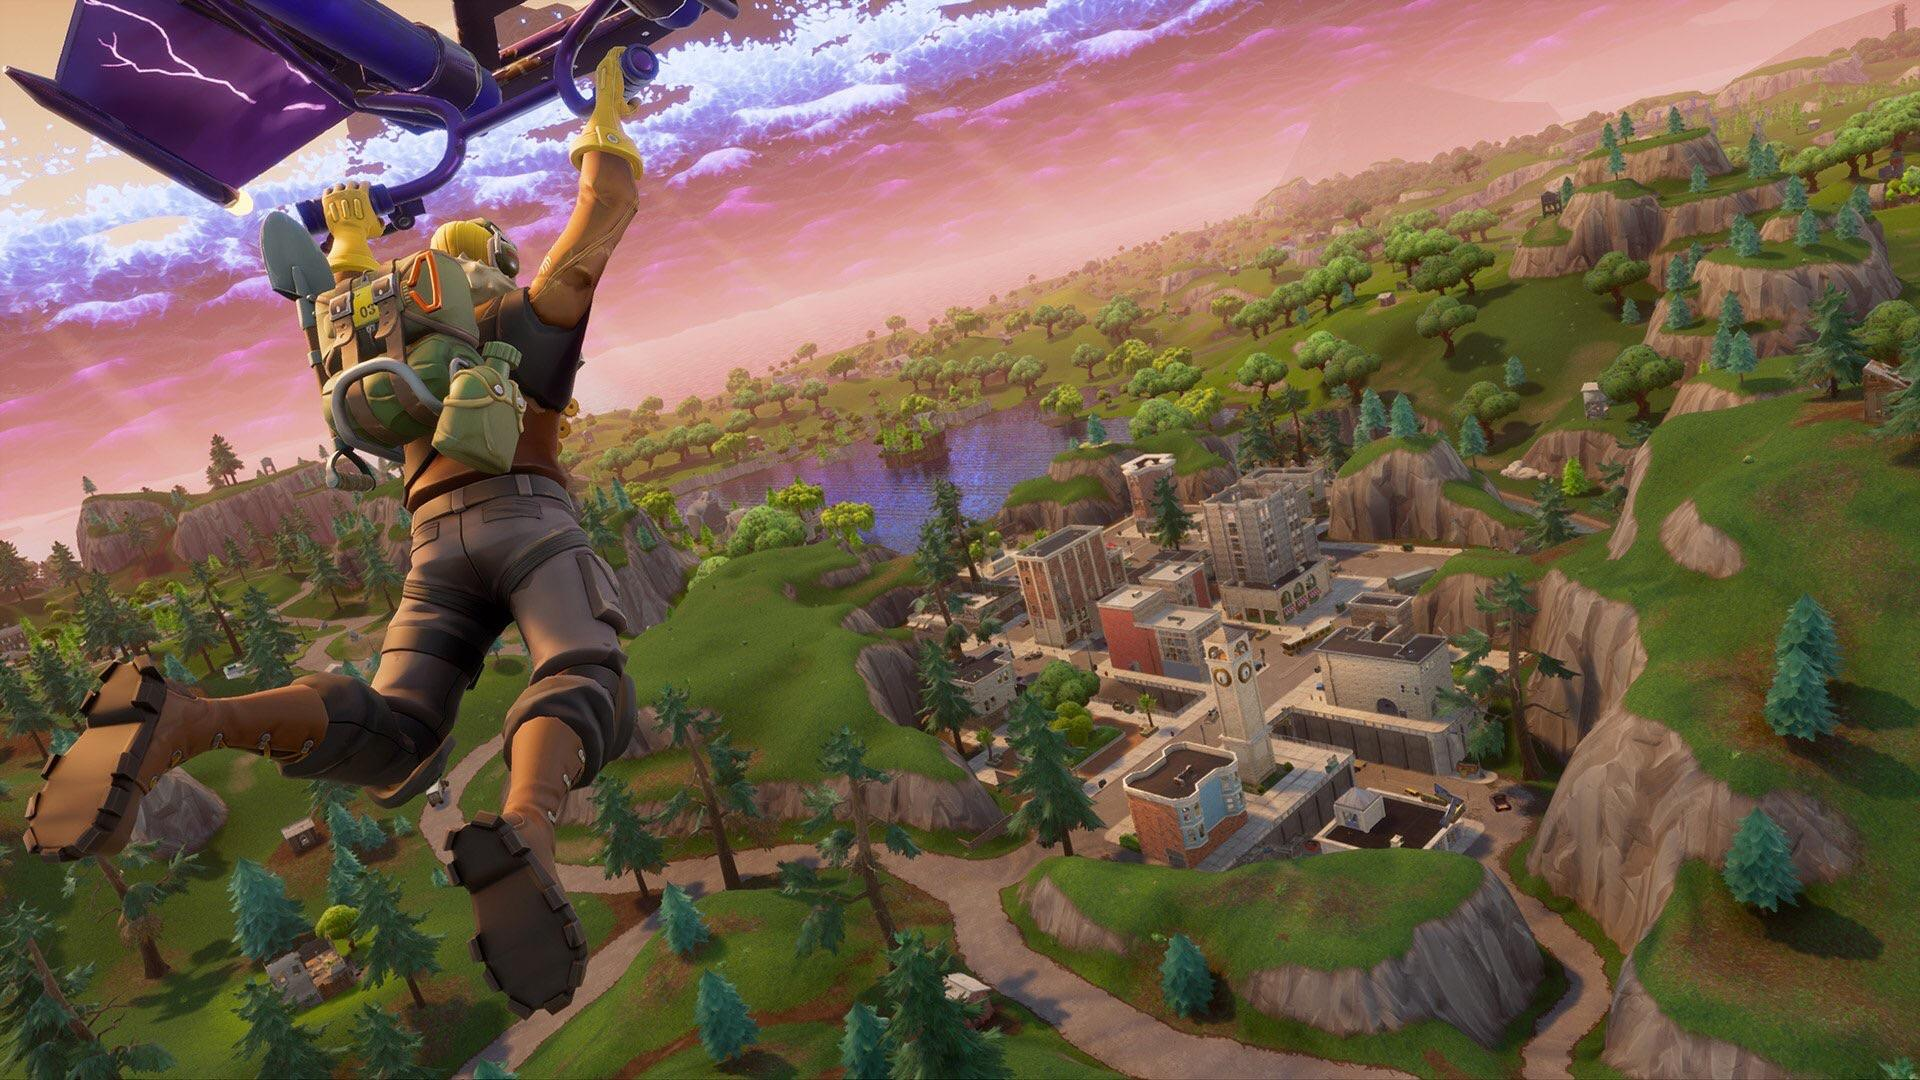 Fortnite Winner Caught Cheating, Stripped Of Prize Money